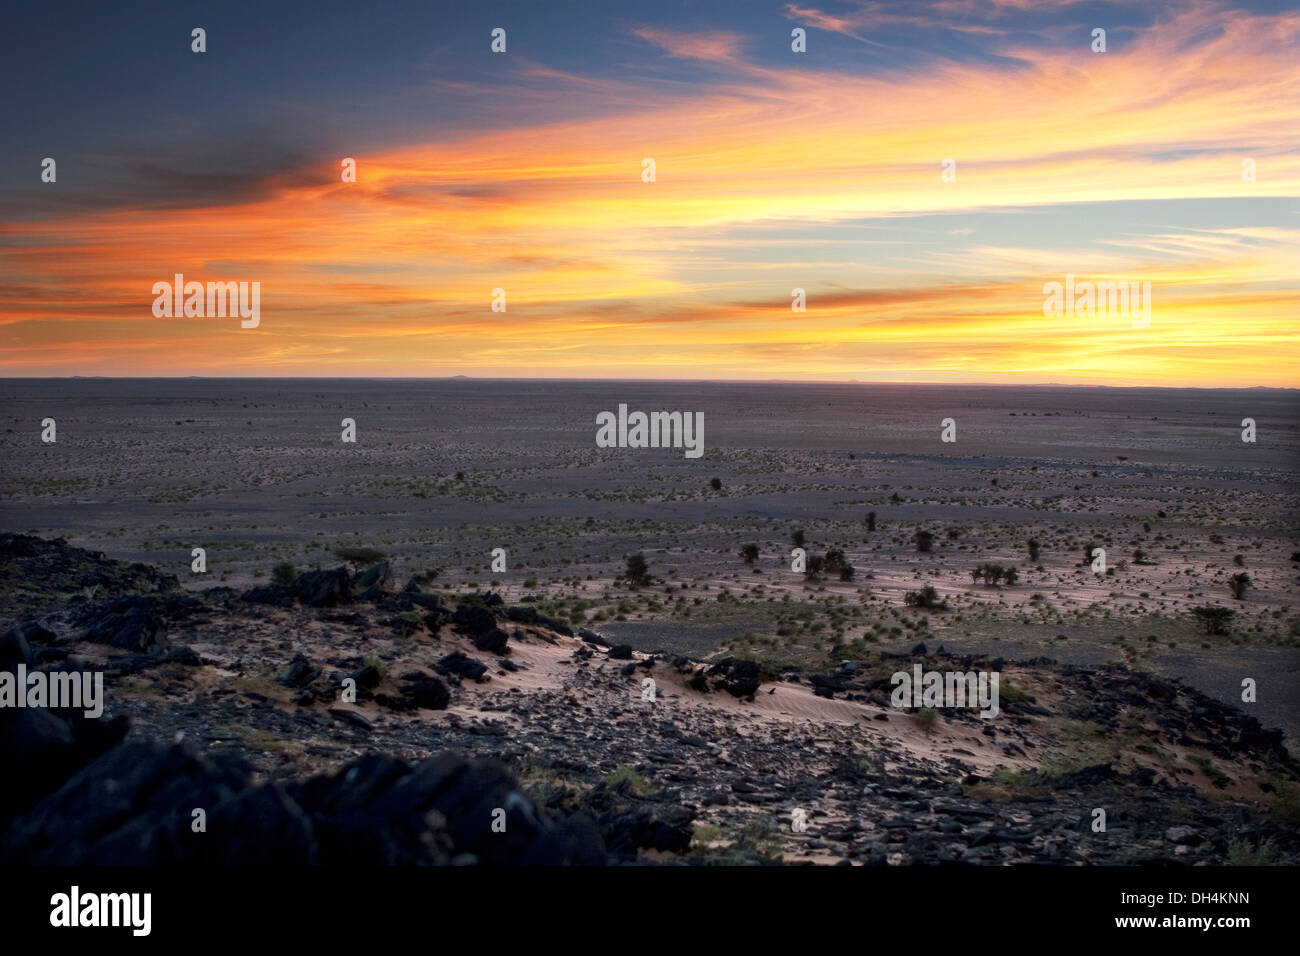 Sun rising with view from granite rocky outcrop in hill location, Western Sahara desert, Mauritania, NW Africa - Stock Image